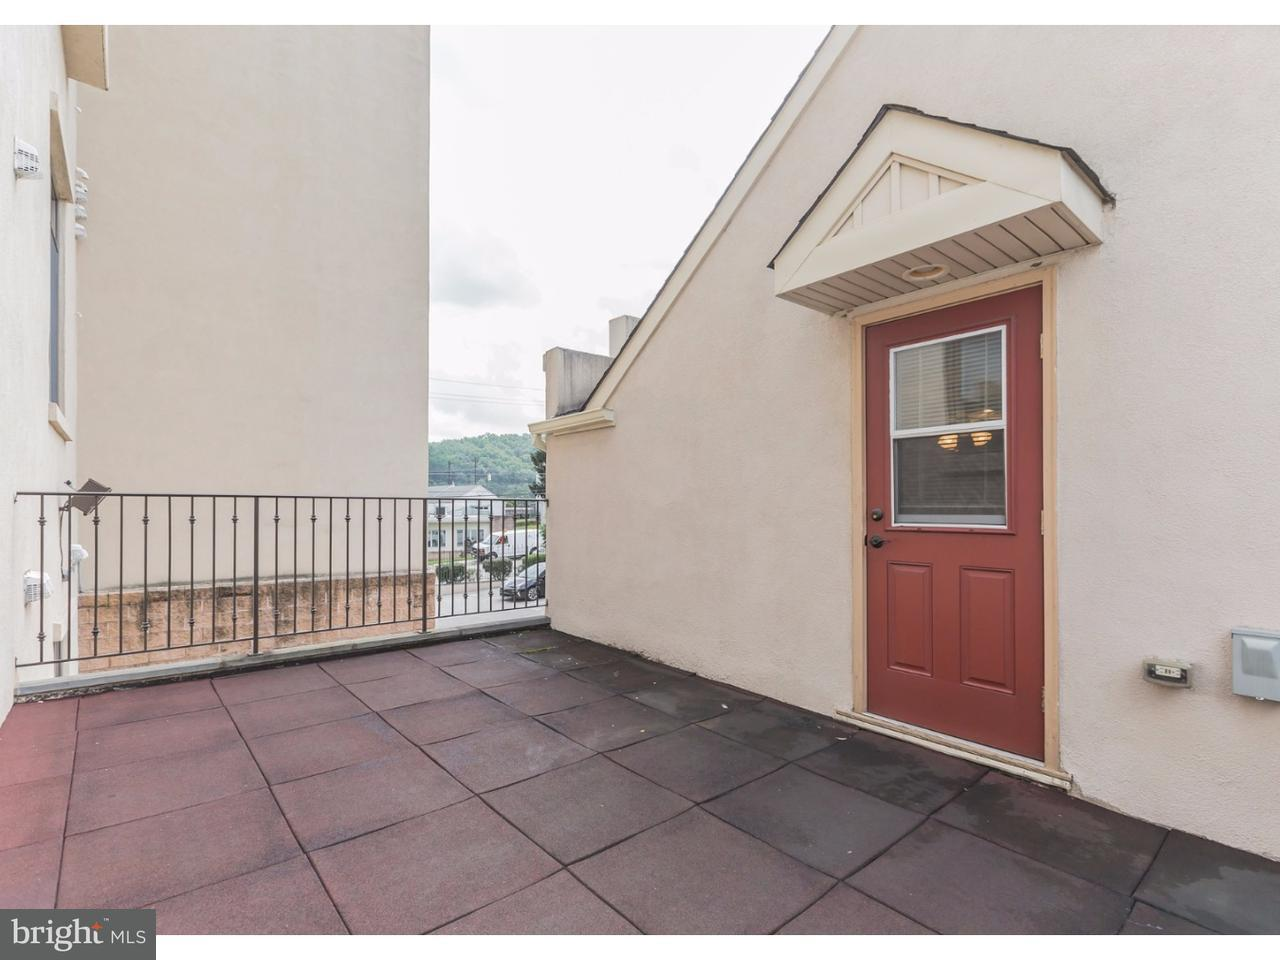 Additional photo for property listing at 542 E HECTOR Street  Conshohocken, Pennsylvania 19428 United States